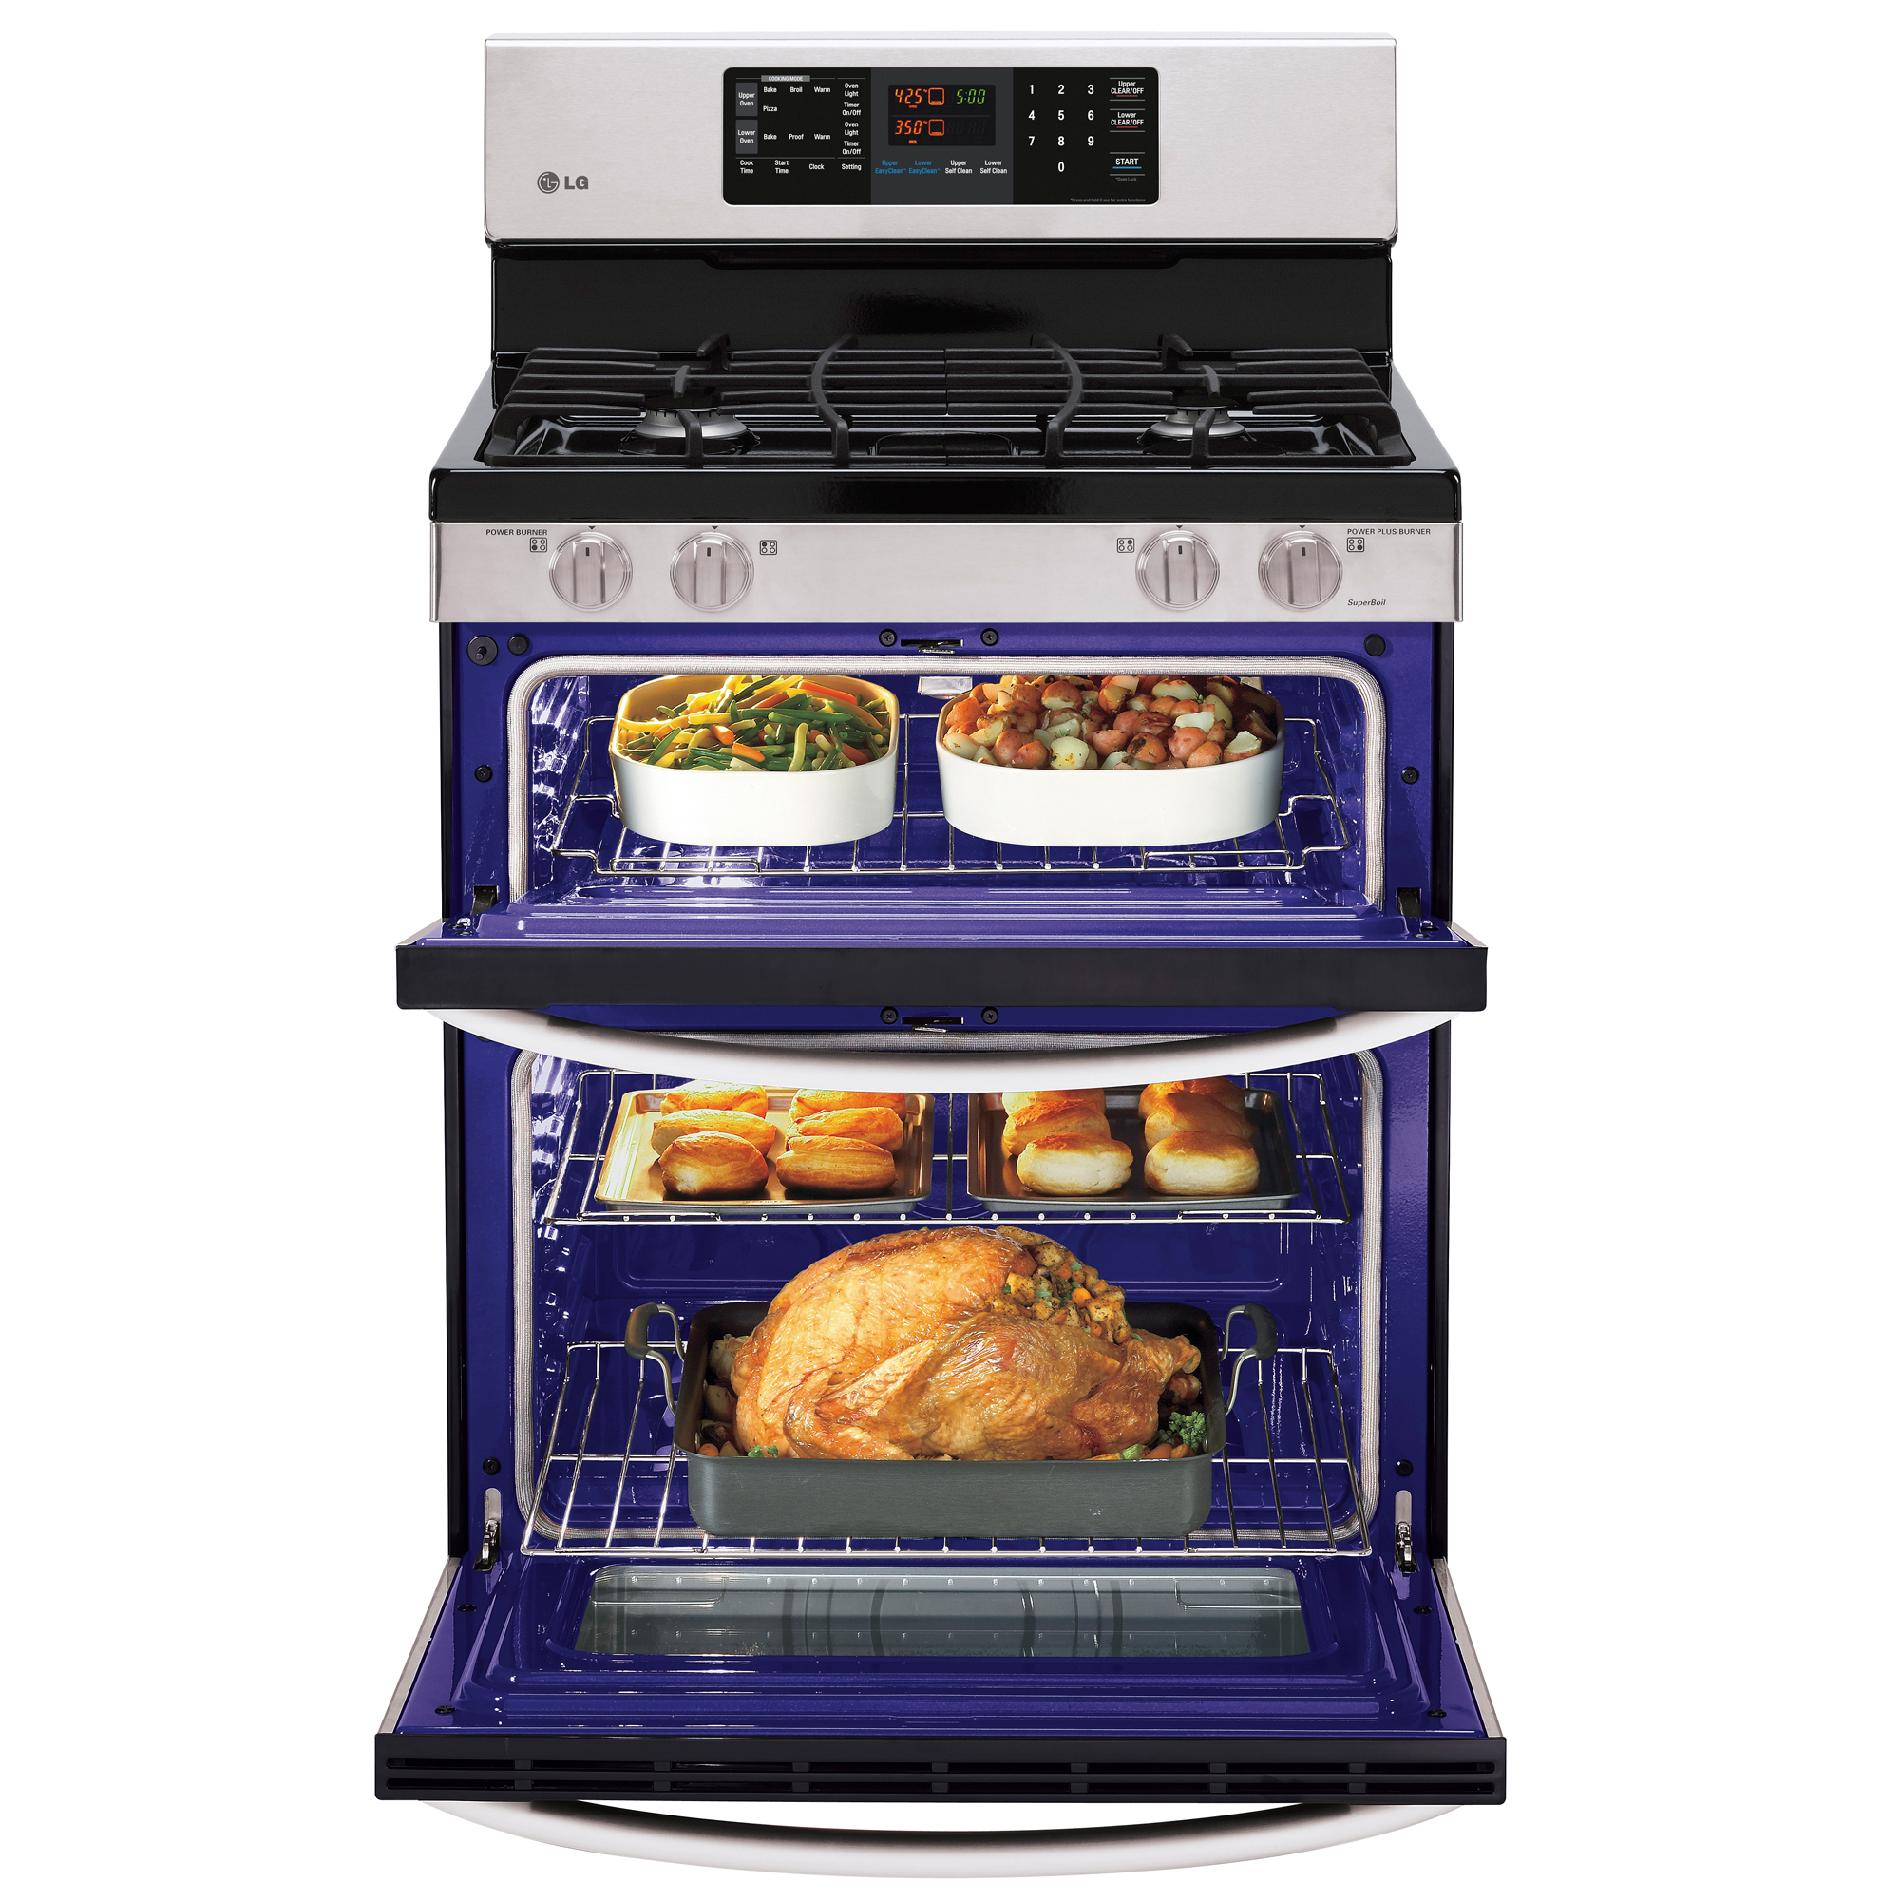 LG LDG3031ST 6.1 cu. ft. Double-Oven Gas Range w/EasyClean™ - Stainless Steel